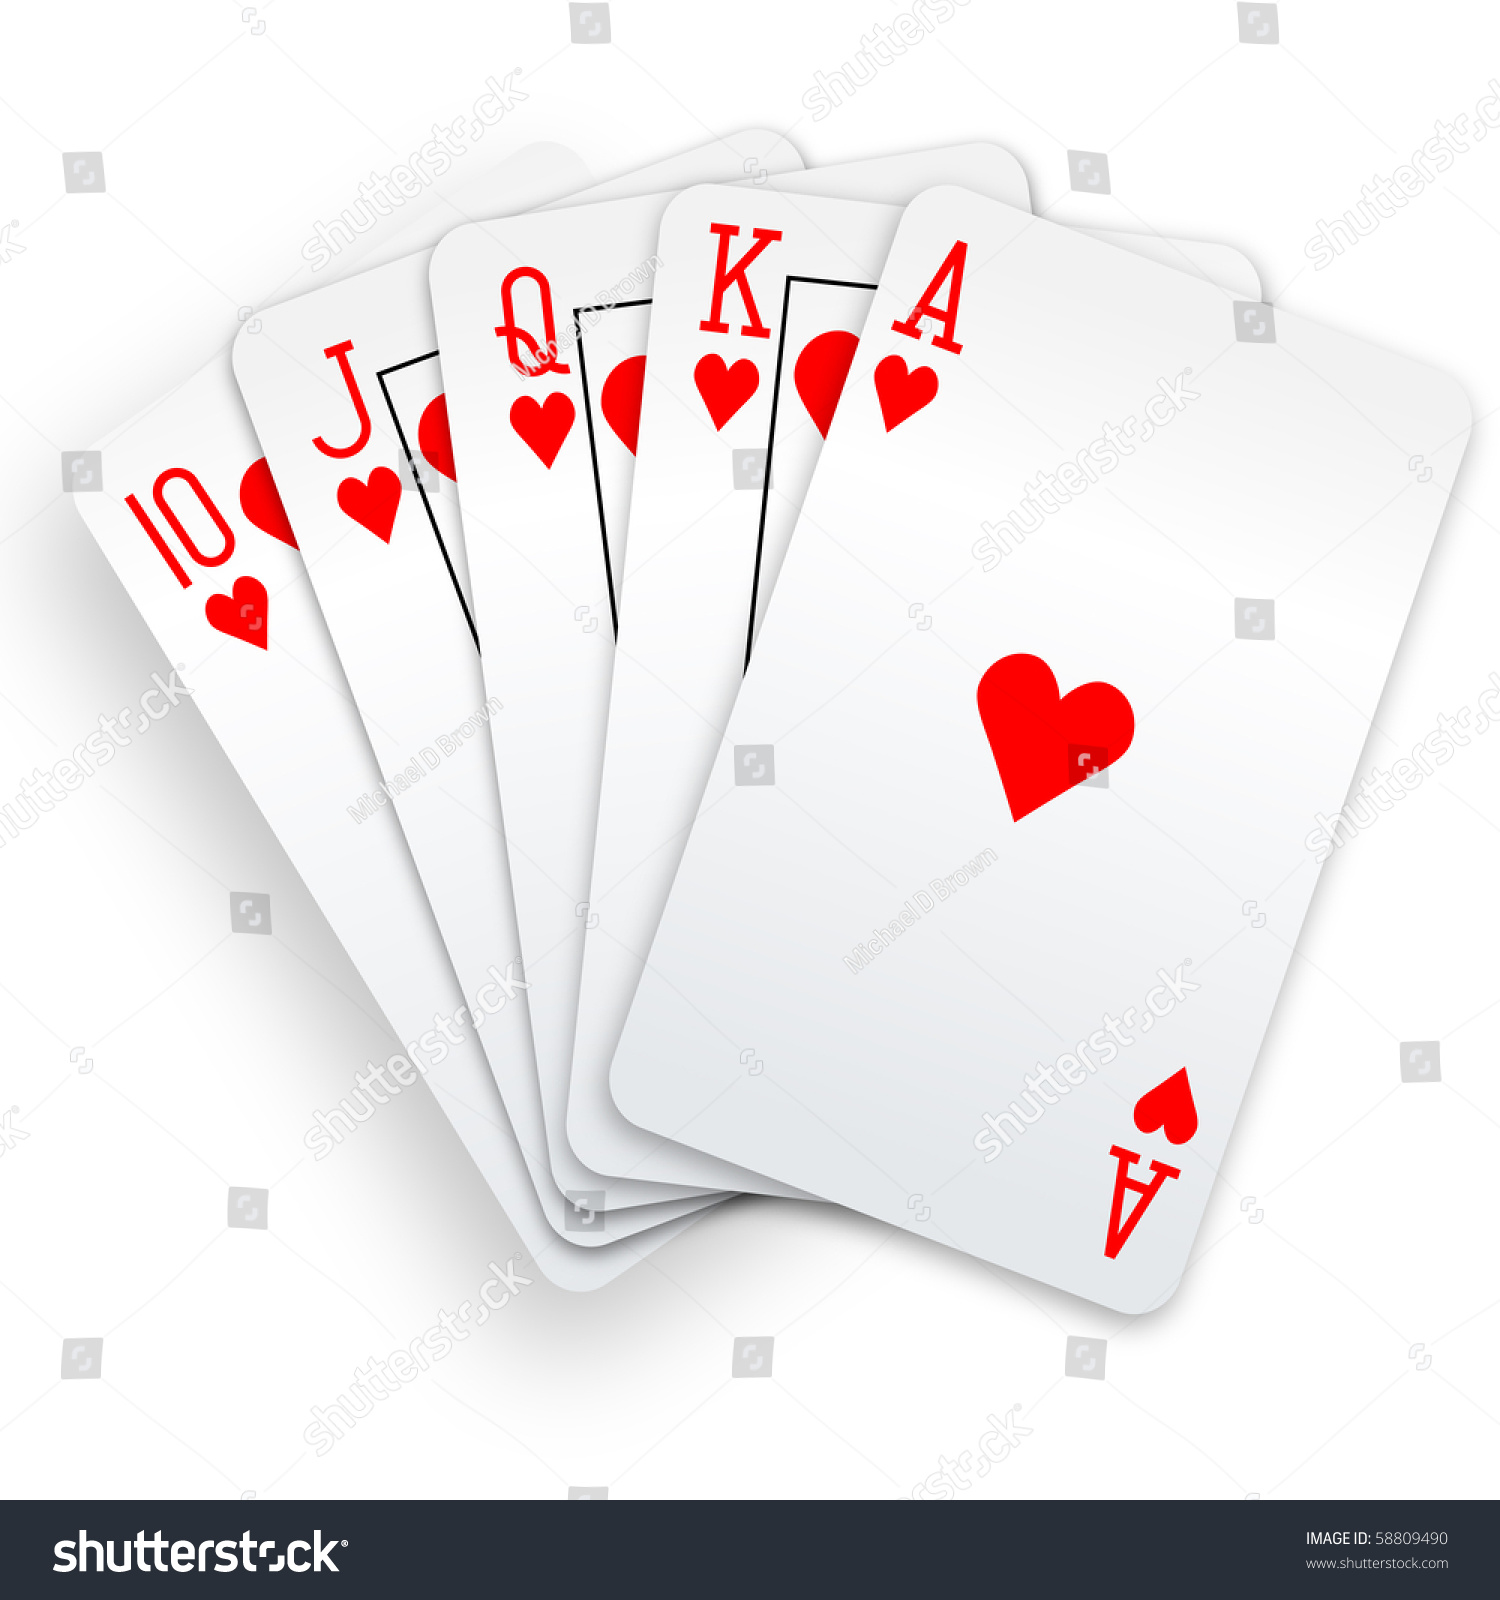 In poker what is higher a straight or a flush